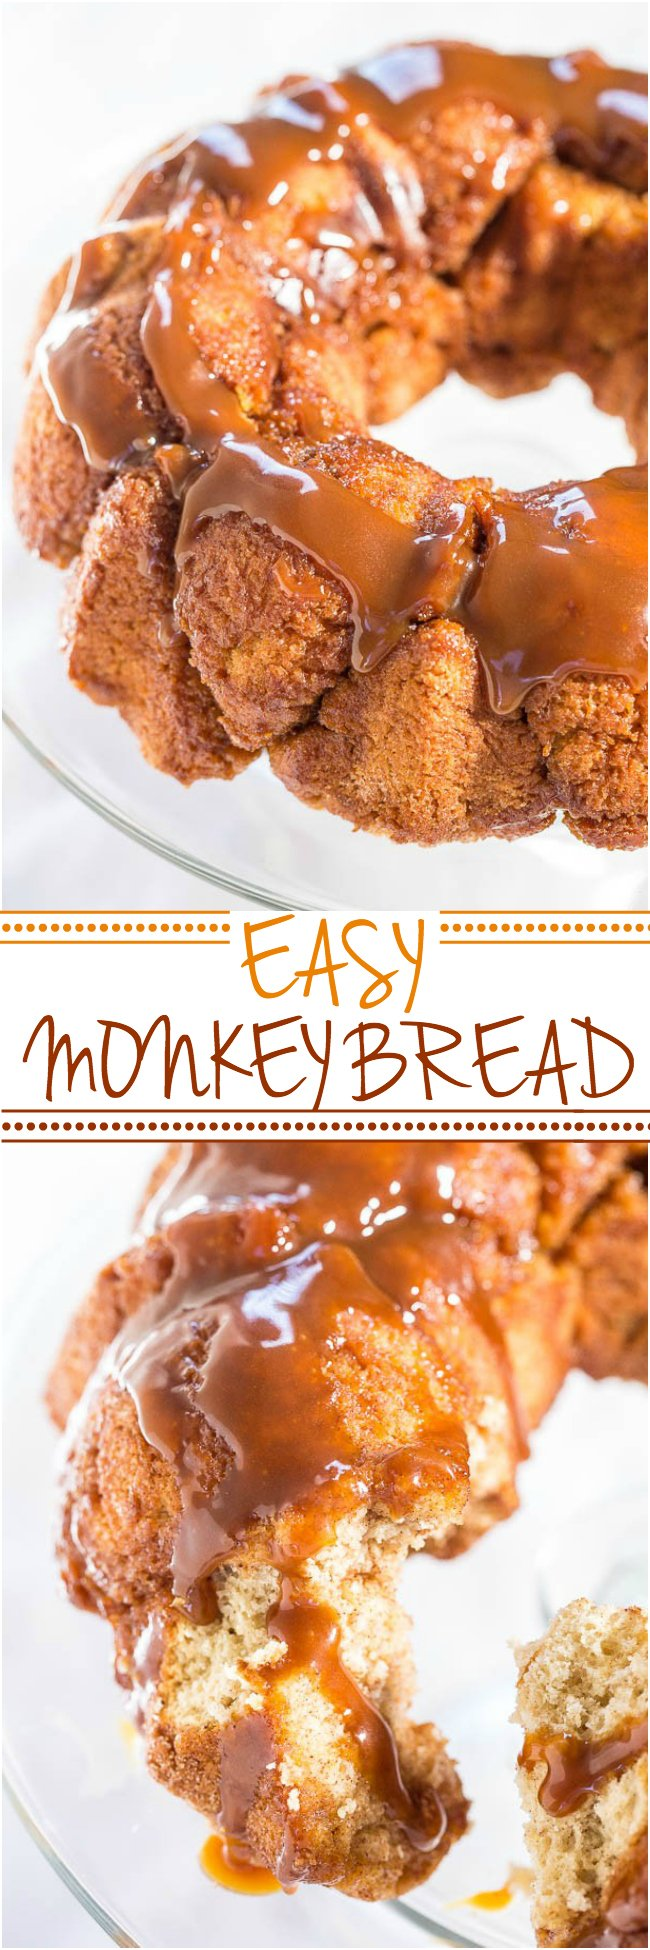 Easy Monkey Bread - No yeast, no dough to roll, no waiting! Fast, easy, and foolproof!! You're going to love tearing off big caramely chunks!!